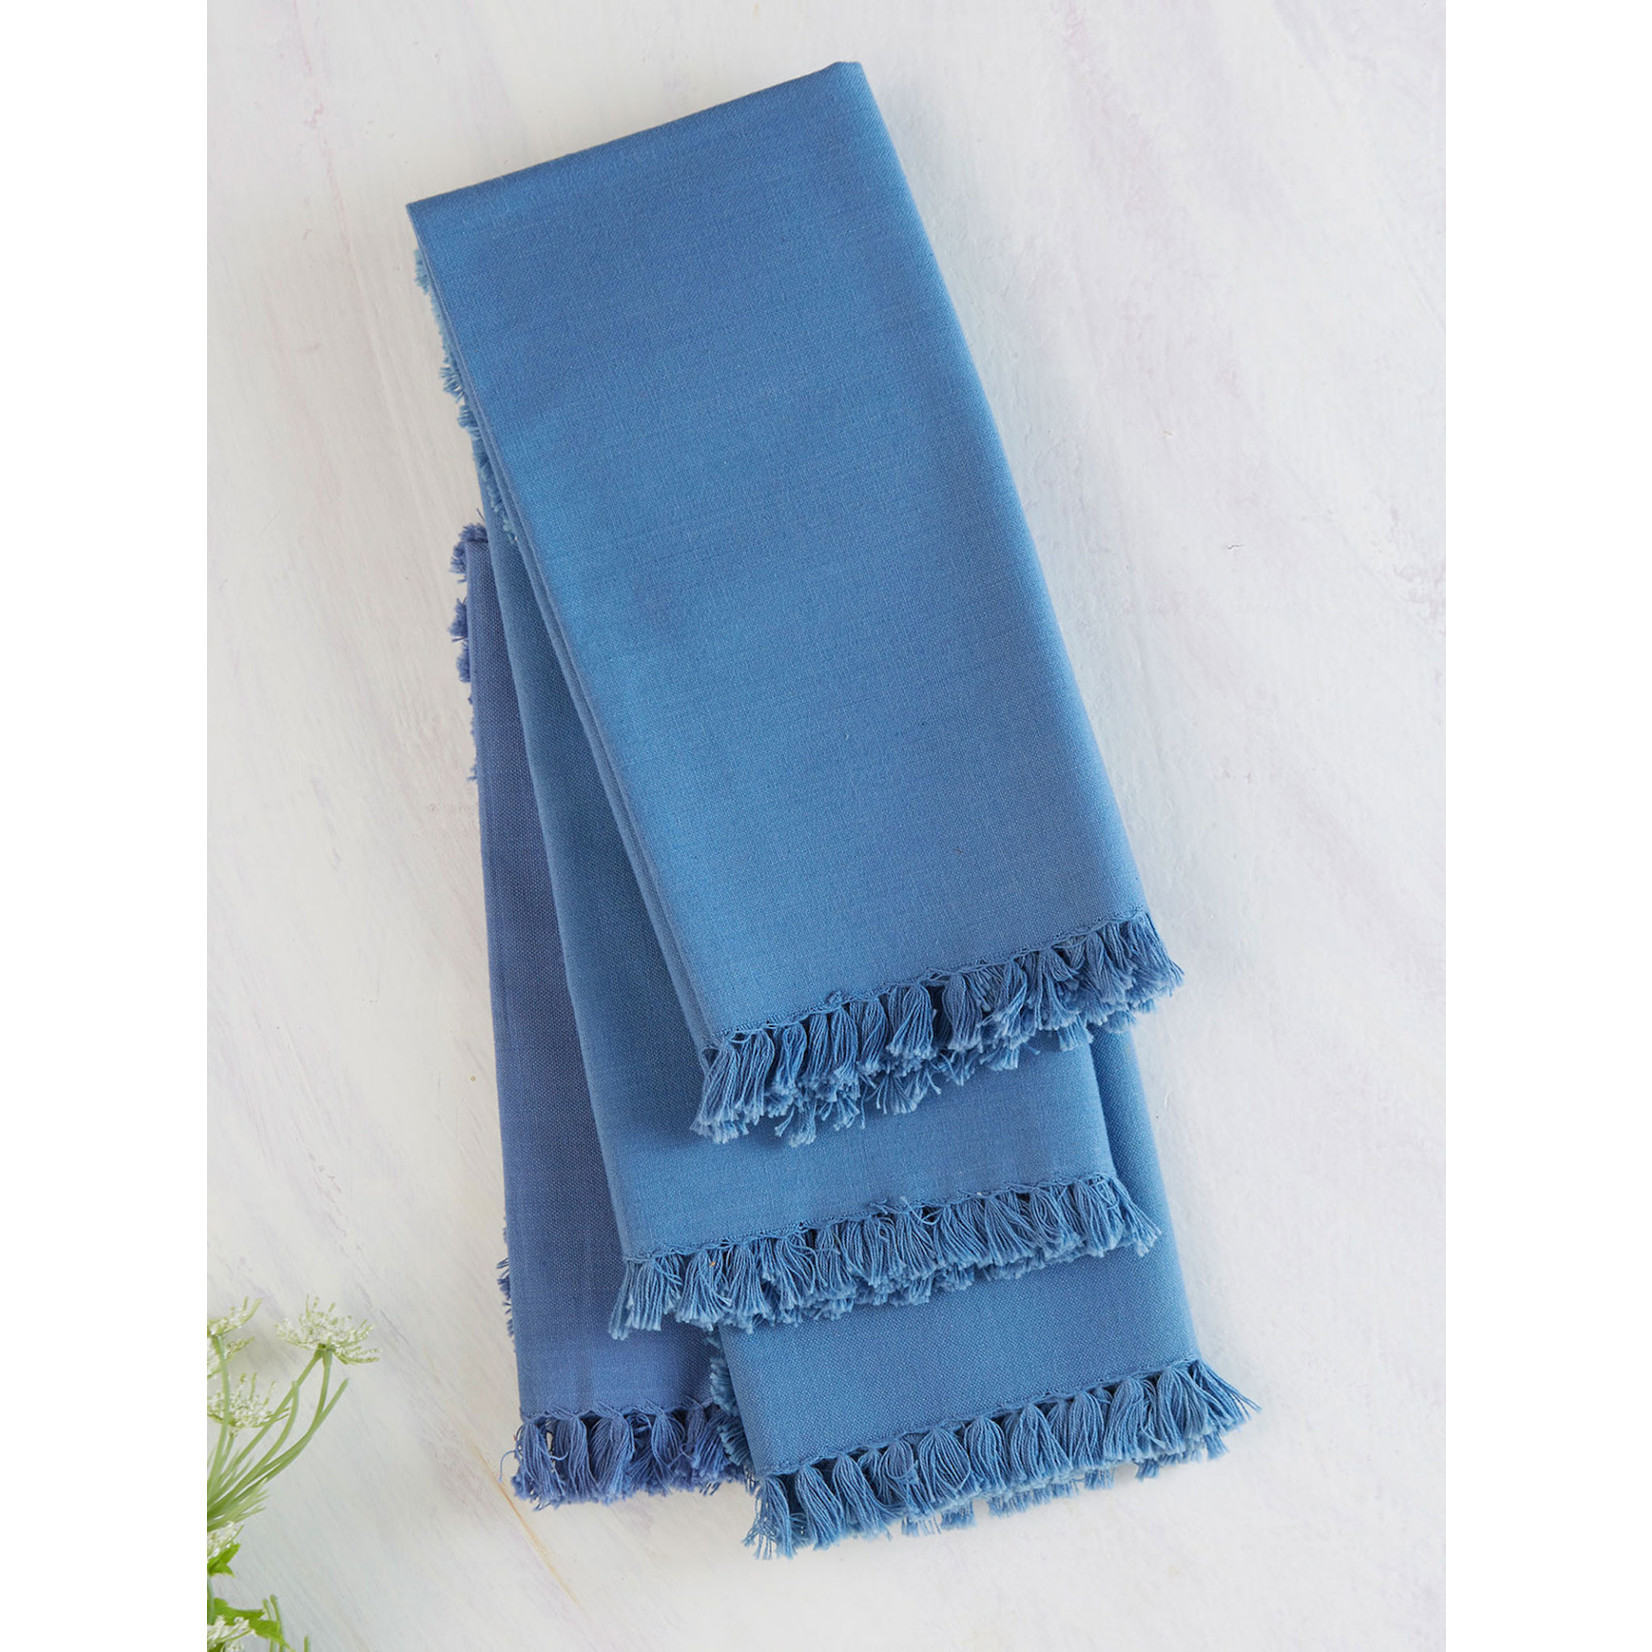 Essential Fringed Napkin Set of 4, Periwinkle